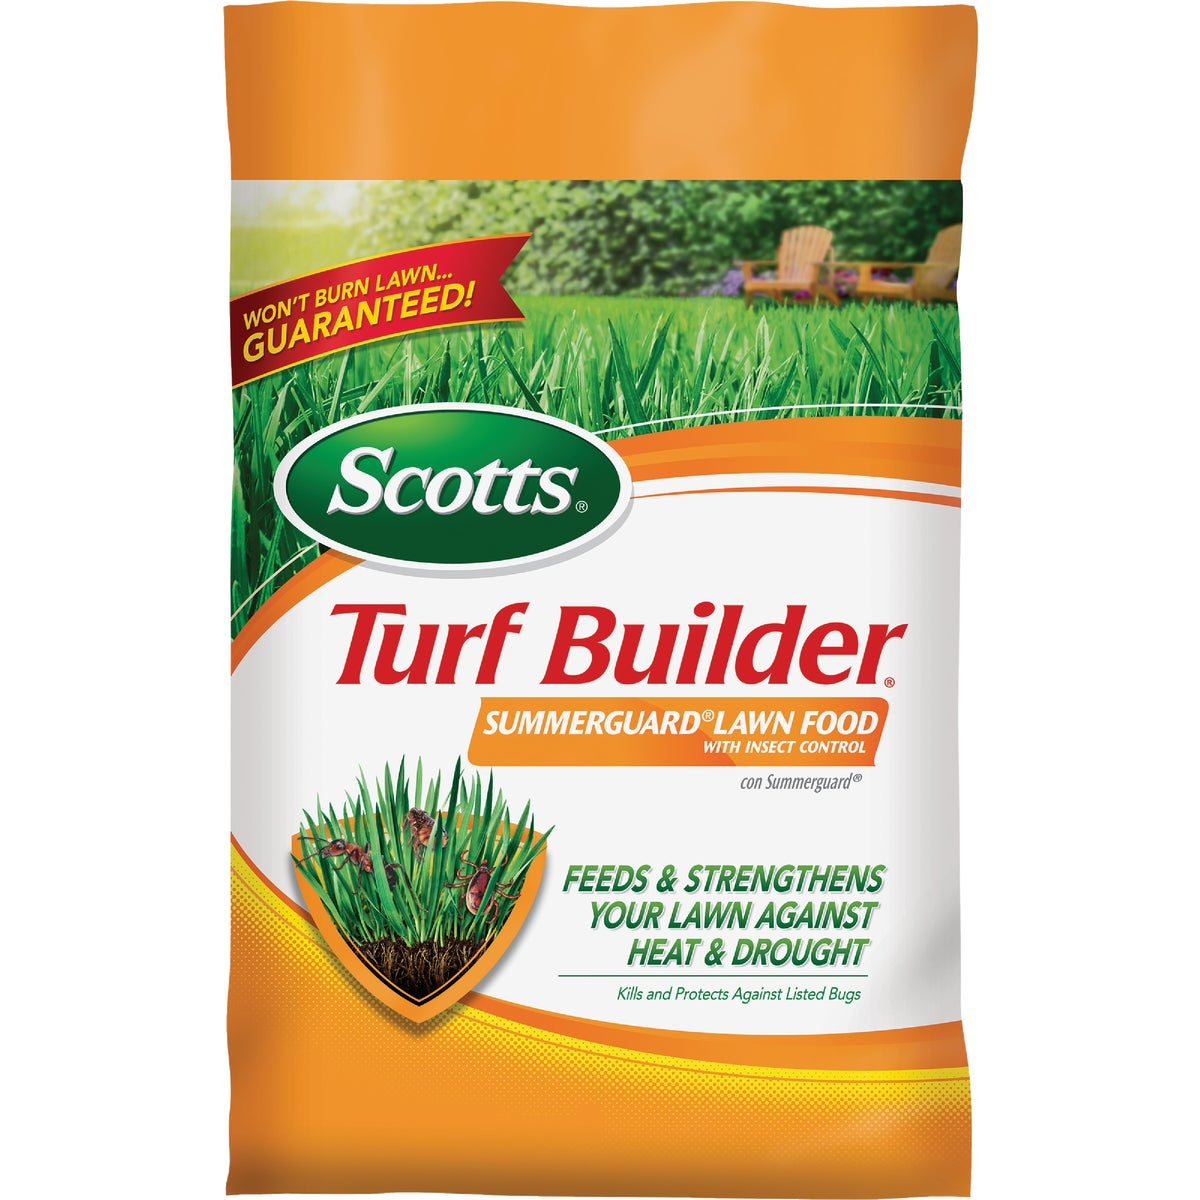 The Scotts Co. 15M W/SUMRG TURF BUILDER 38015